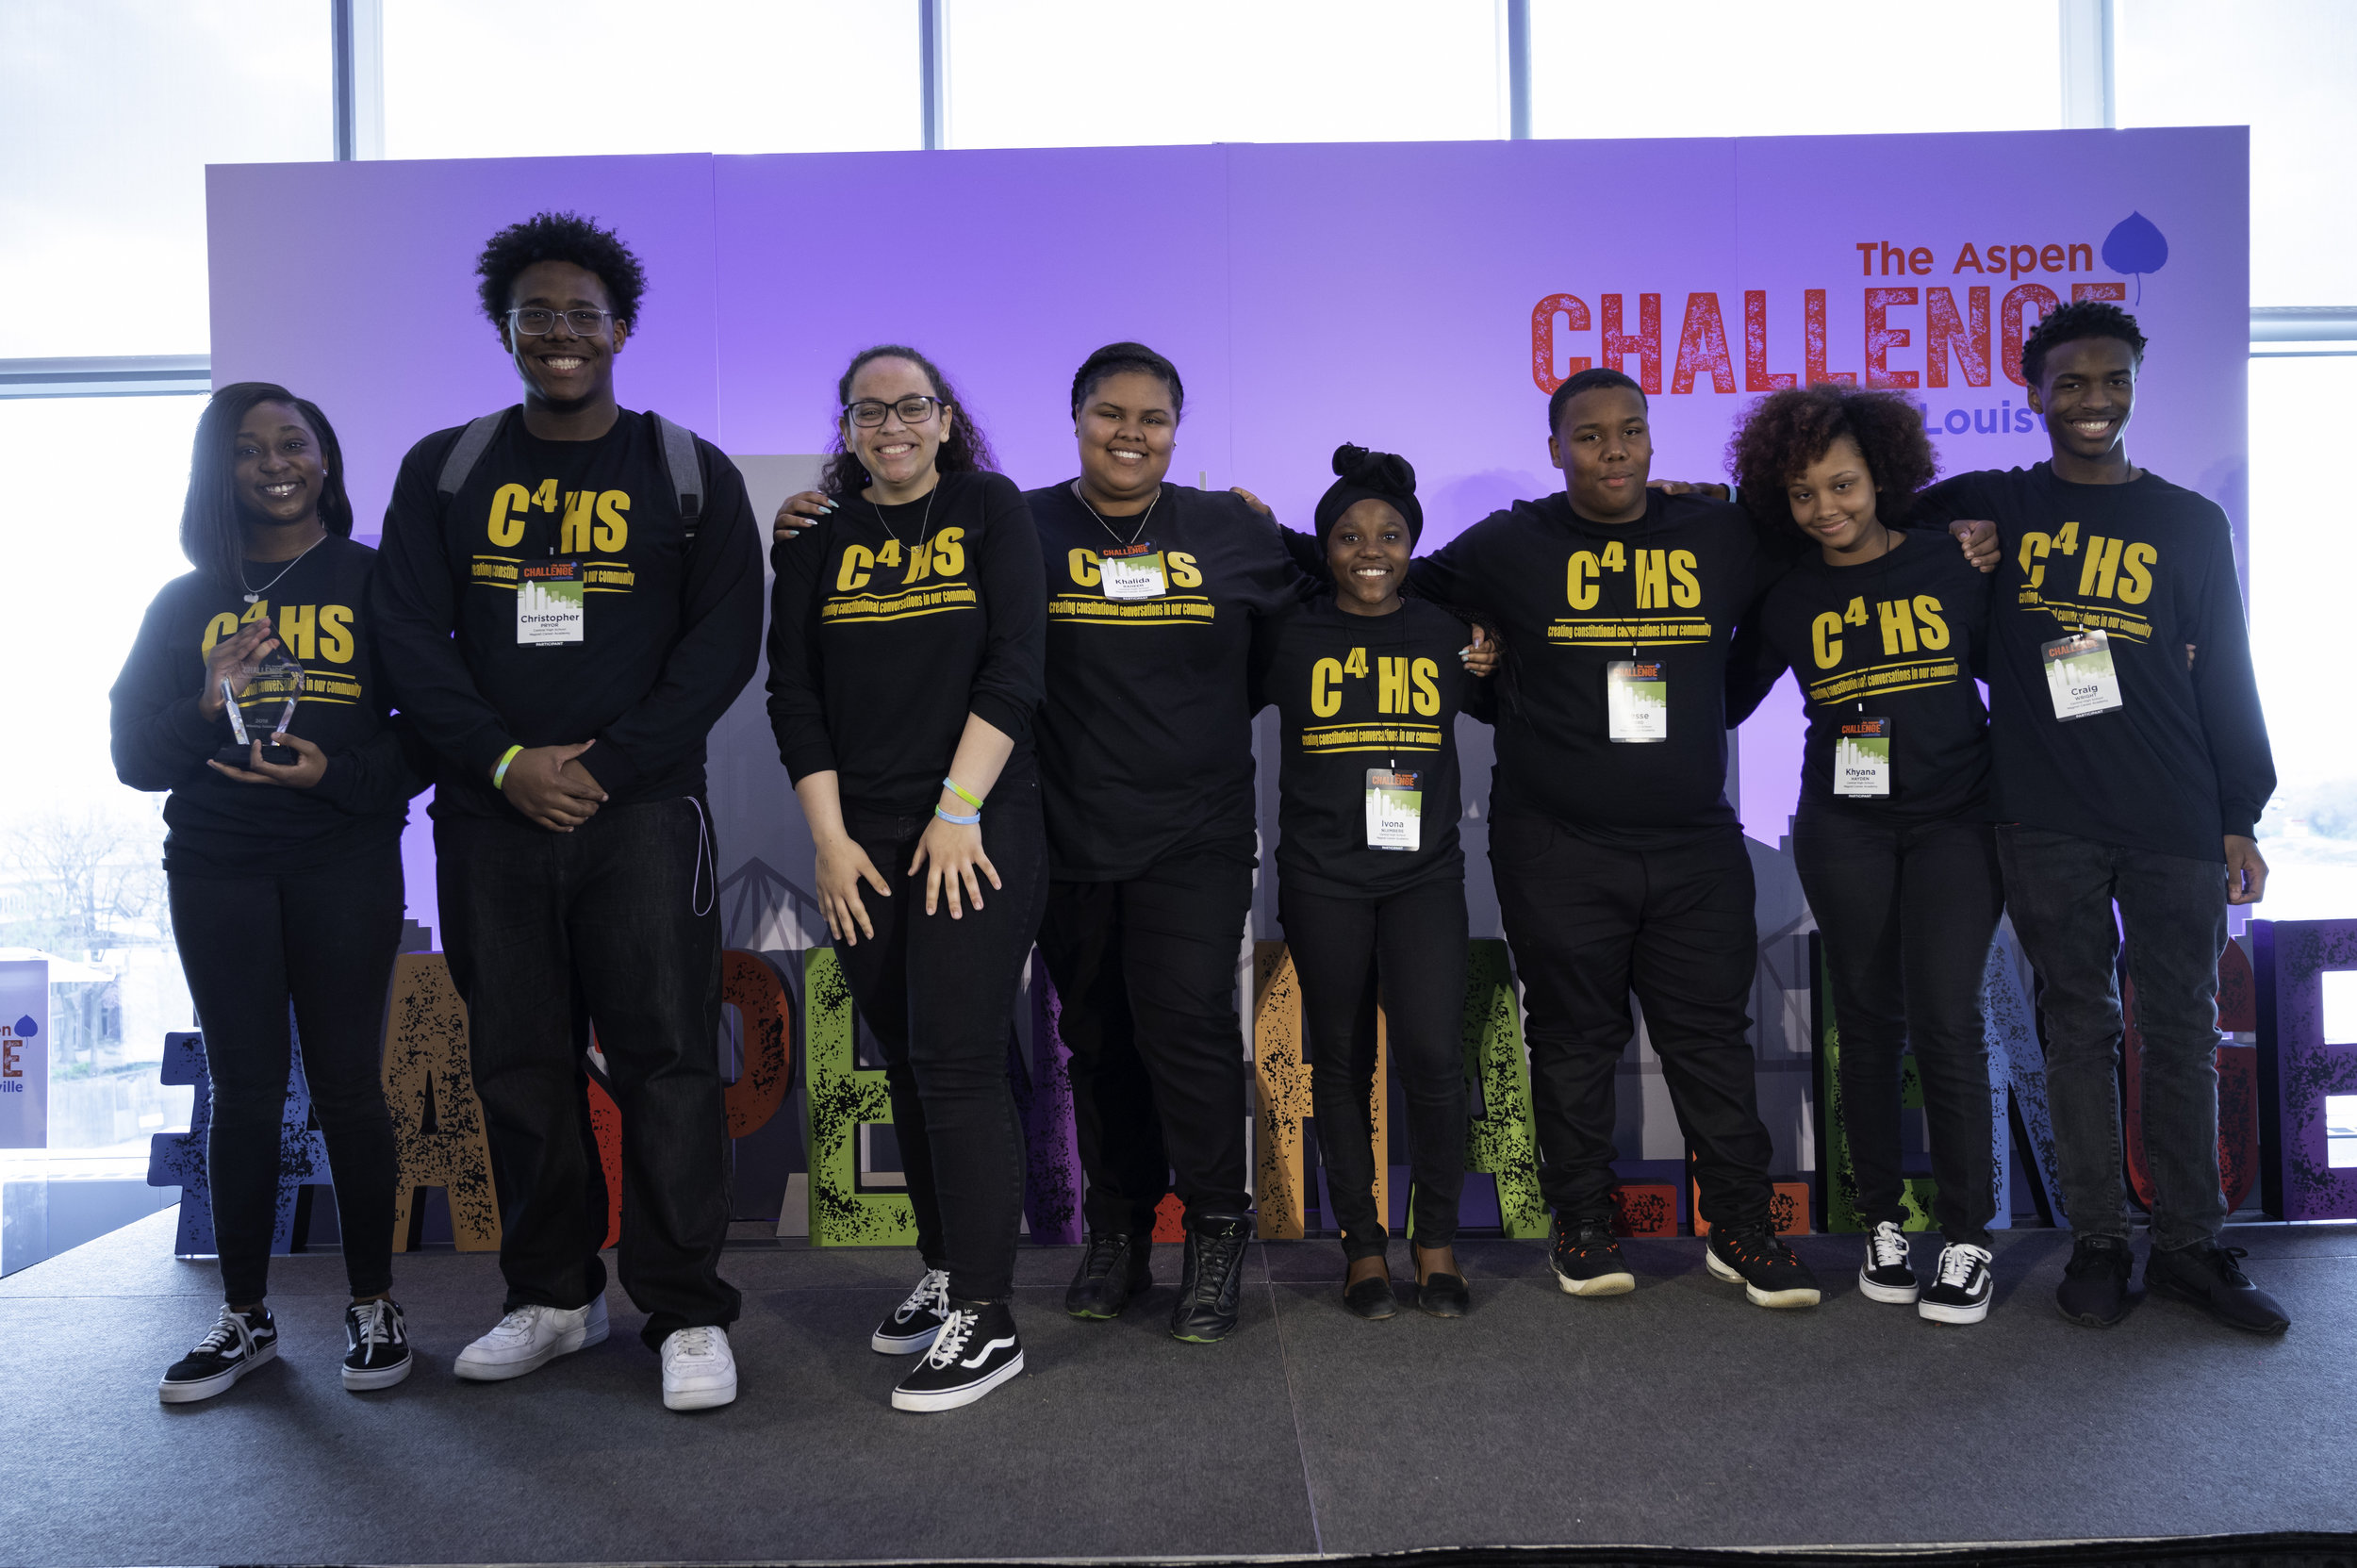 Winning Team C-4HS (Creating Constitutional Conversations in our Community), Central High School Magnet Career Academy